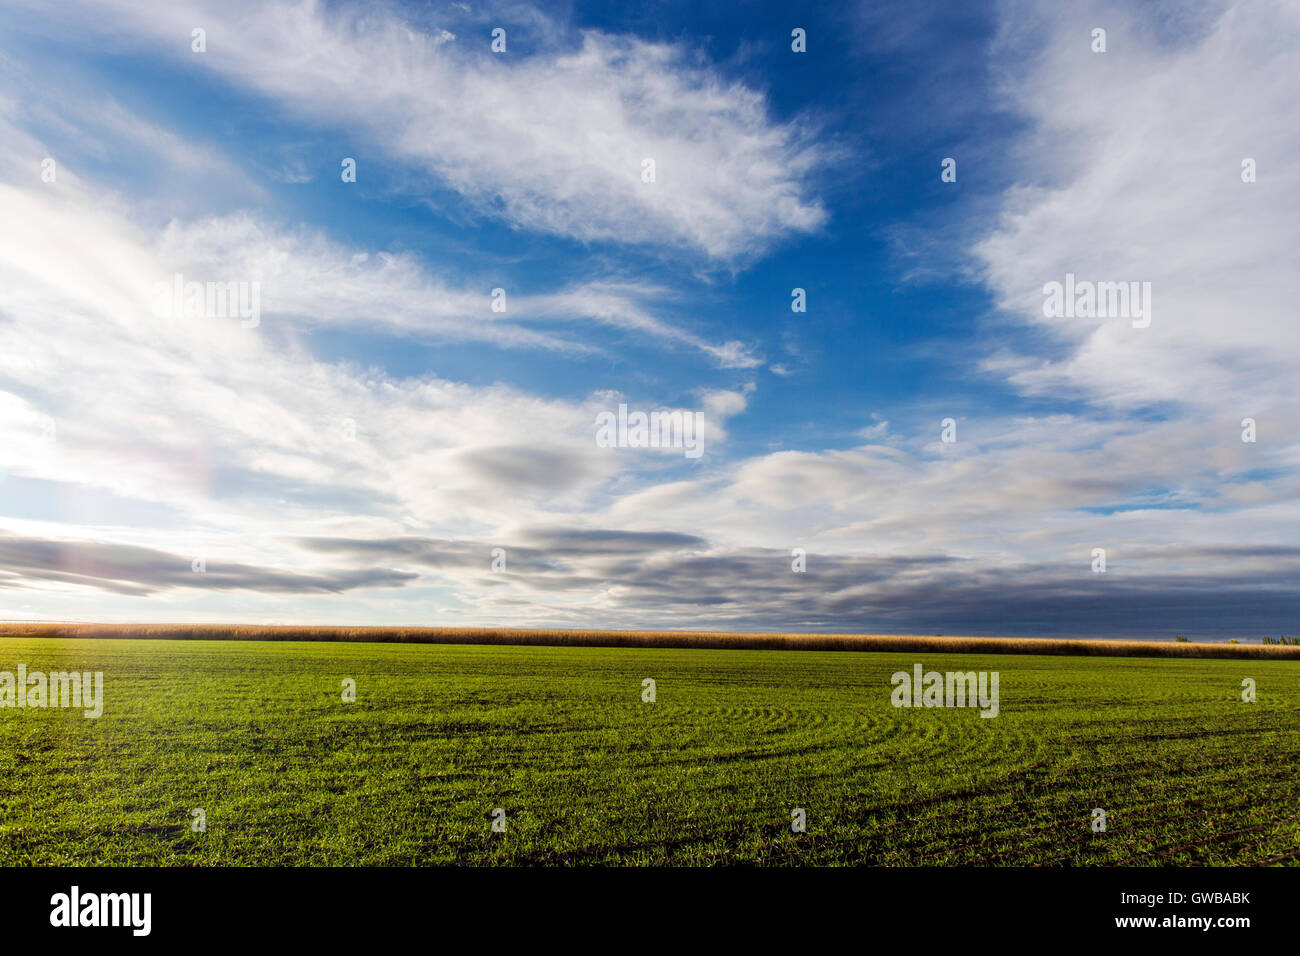 Farm fields and open sky with clouds in eastern Colorado; USA - Stock Image